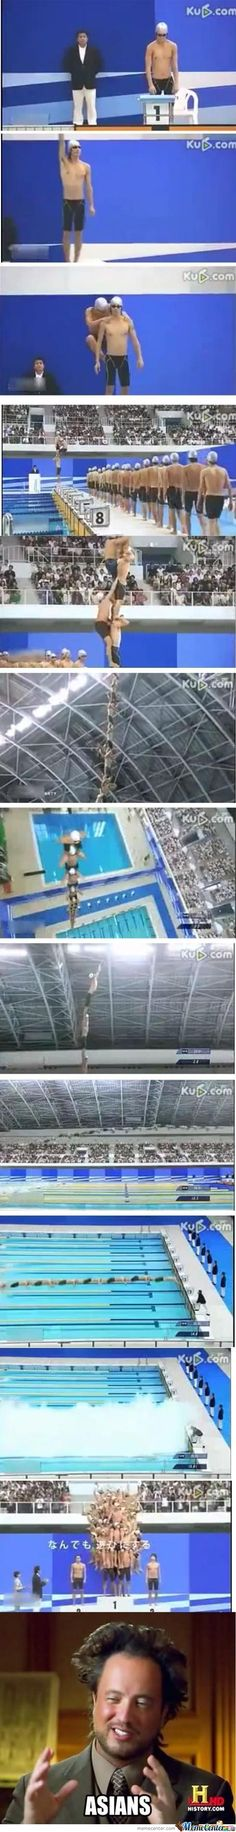 Micheal Phelps Has Some Competition